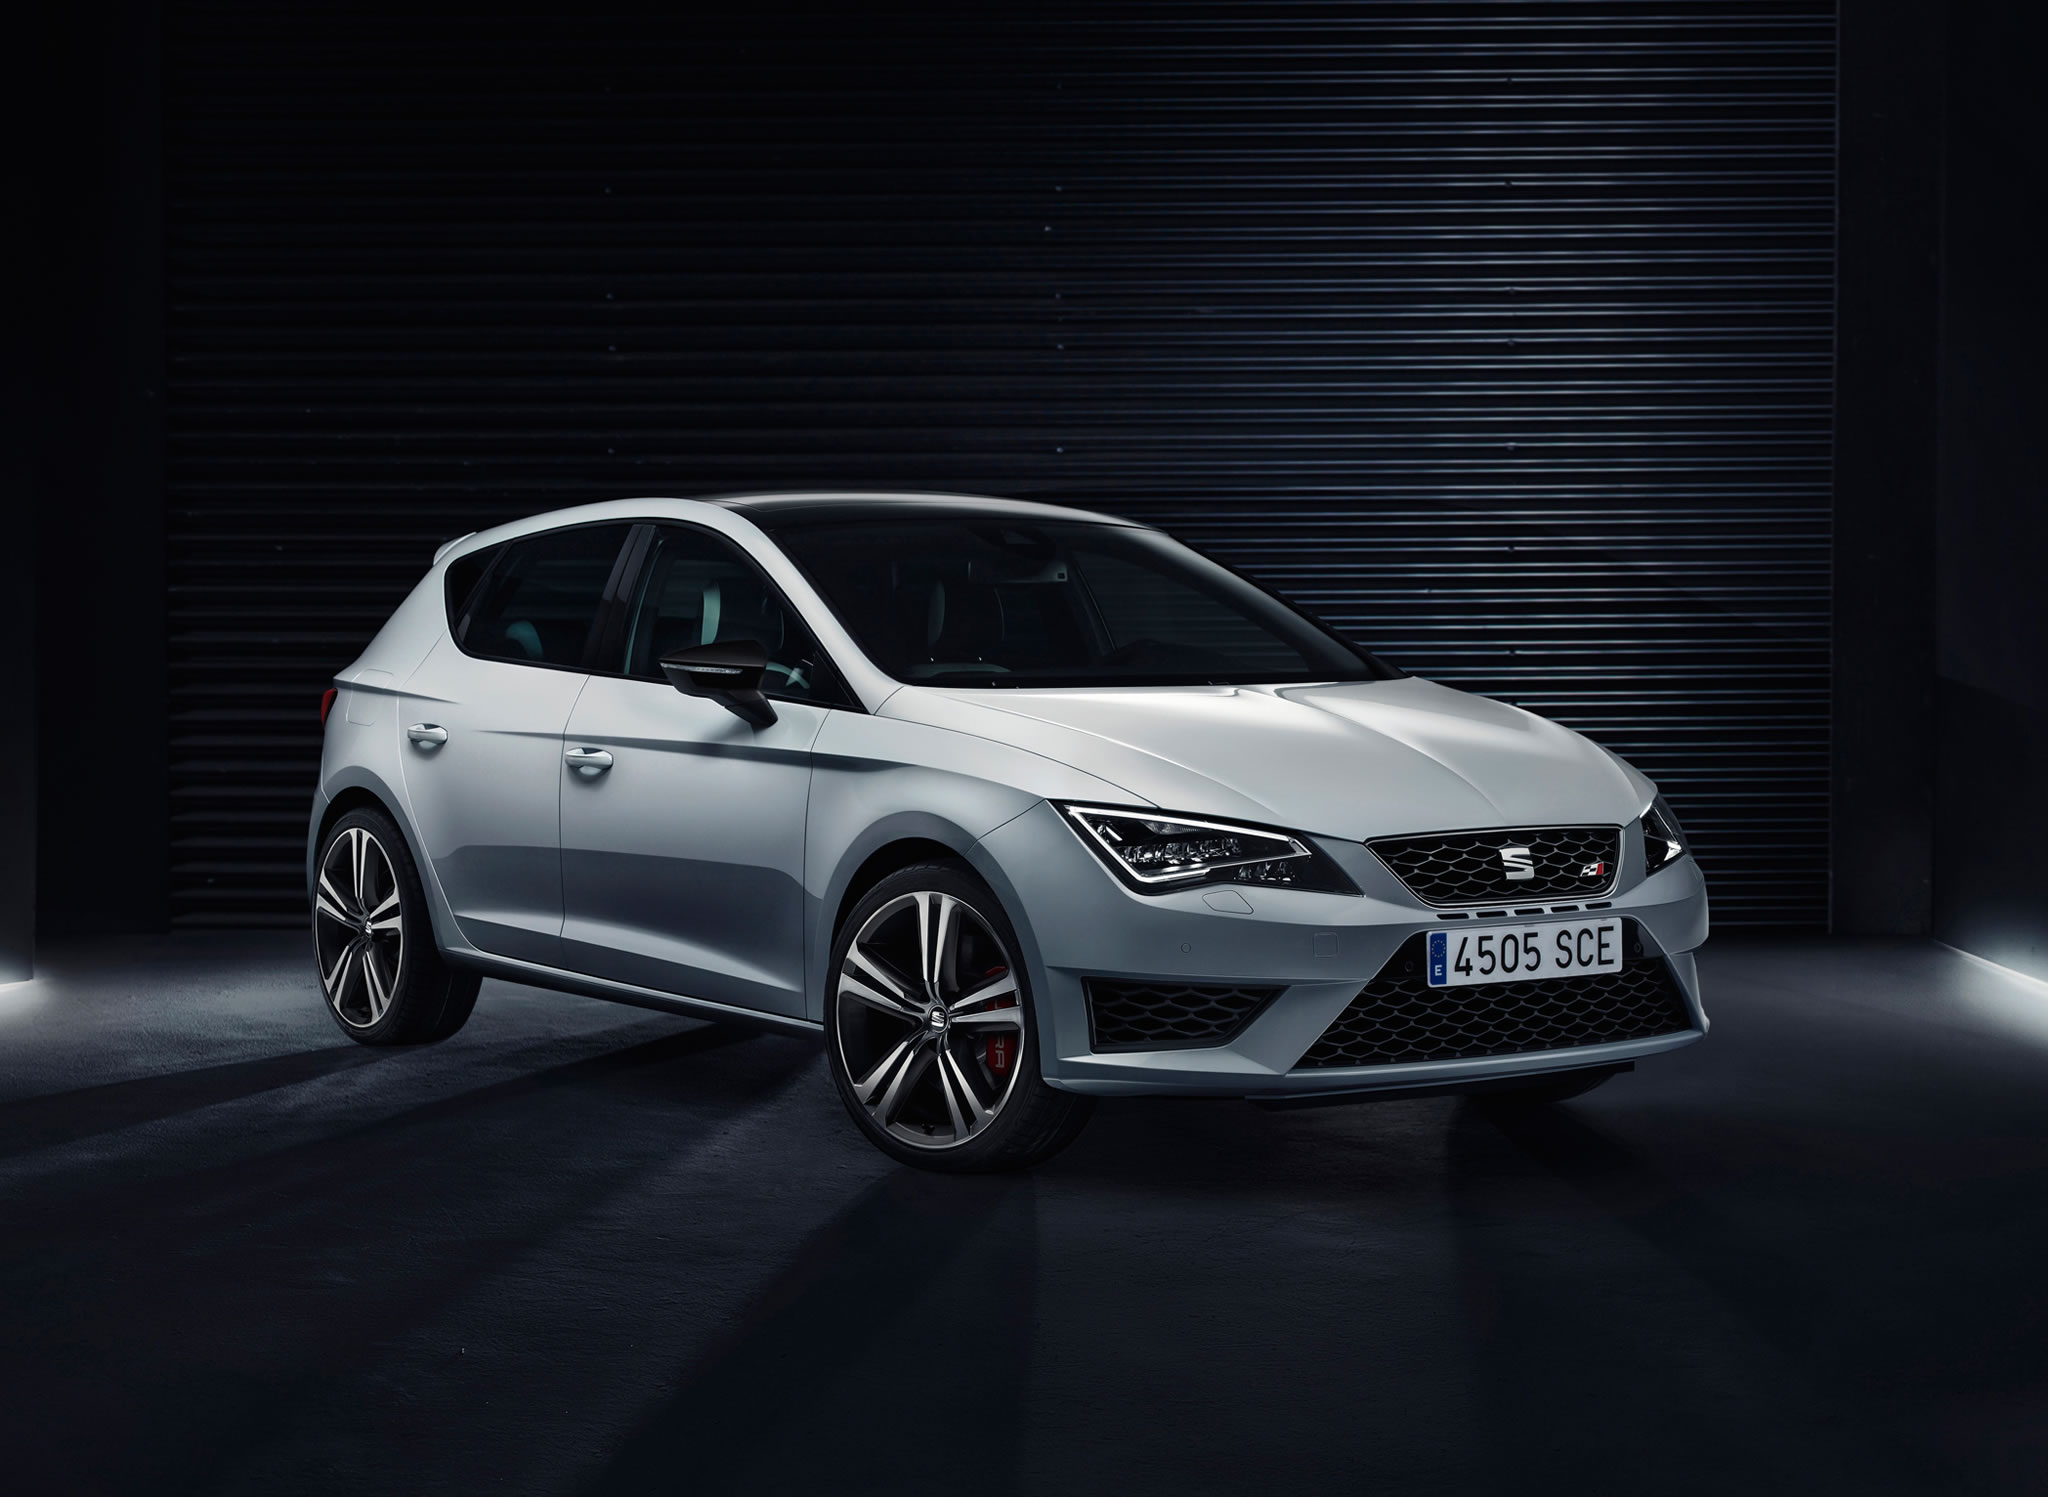 2014 seat leon cupra 280 front photo 5 door size 2048 x 1497 nr 3 11. Black Bedroom Furniture Sets. Home Design Ideas